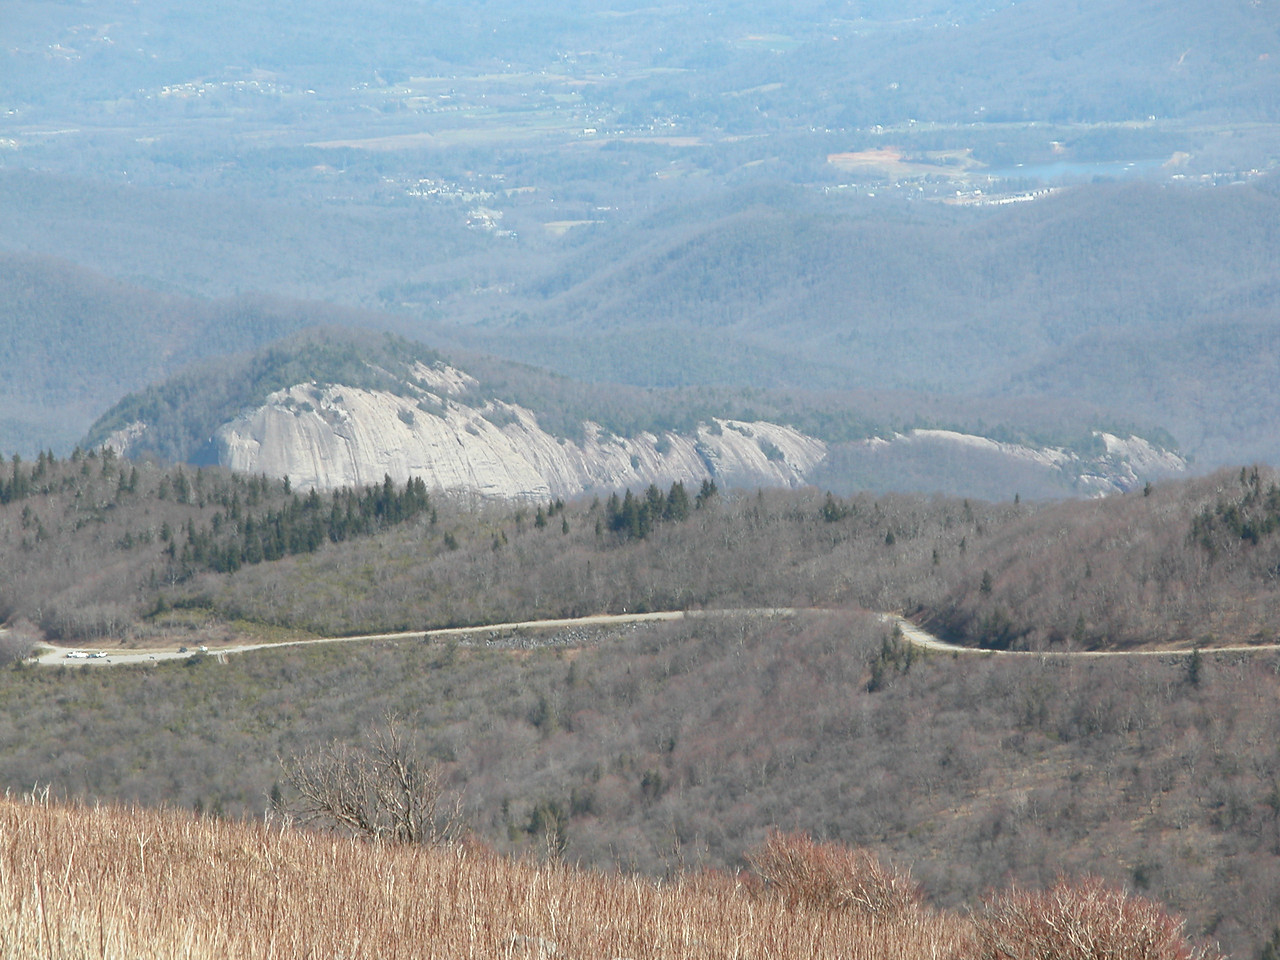 A tighter shot of Looking Glass Rock and the Blue Ridge Parkway from the summit of Black Balsam Knob.